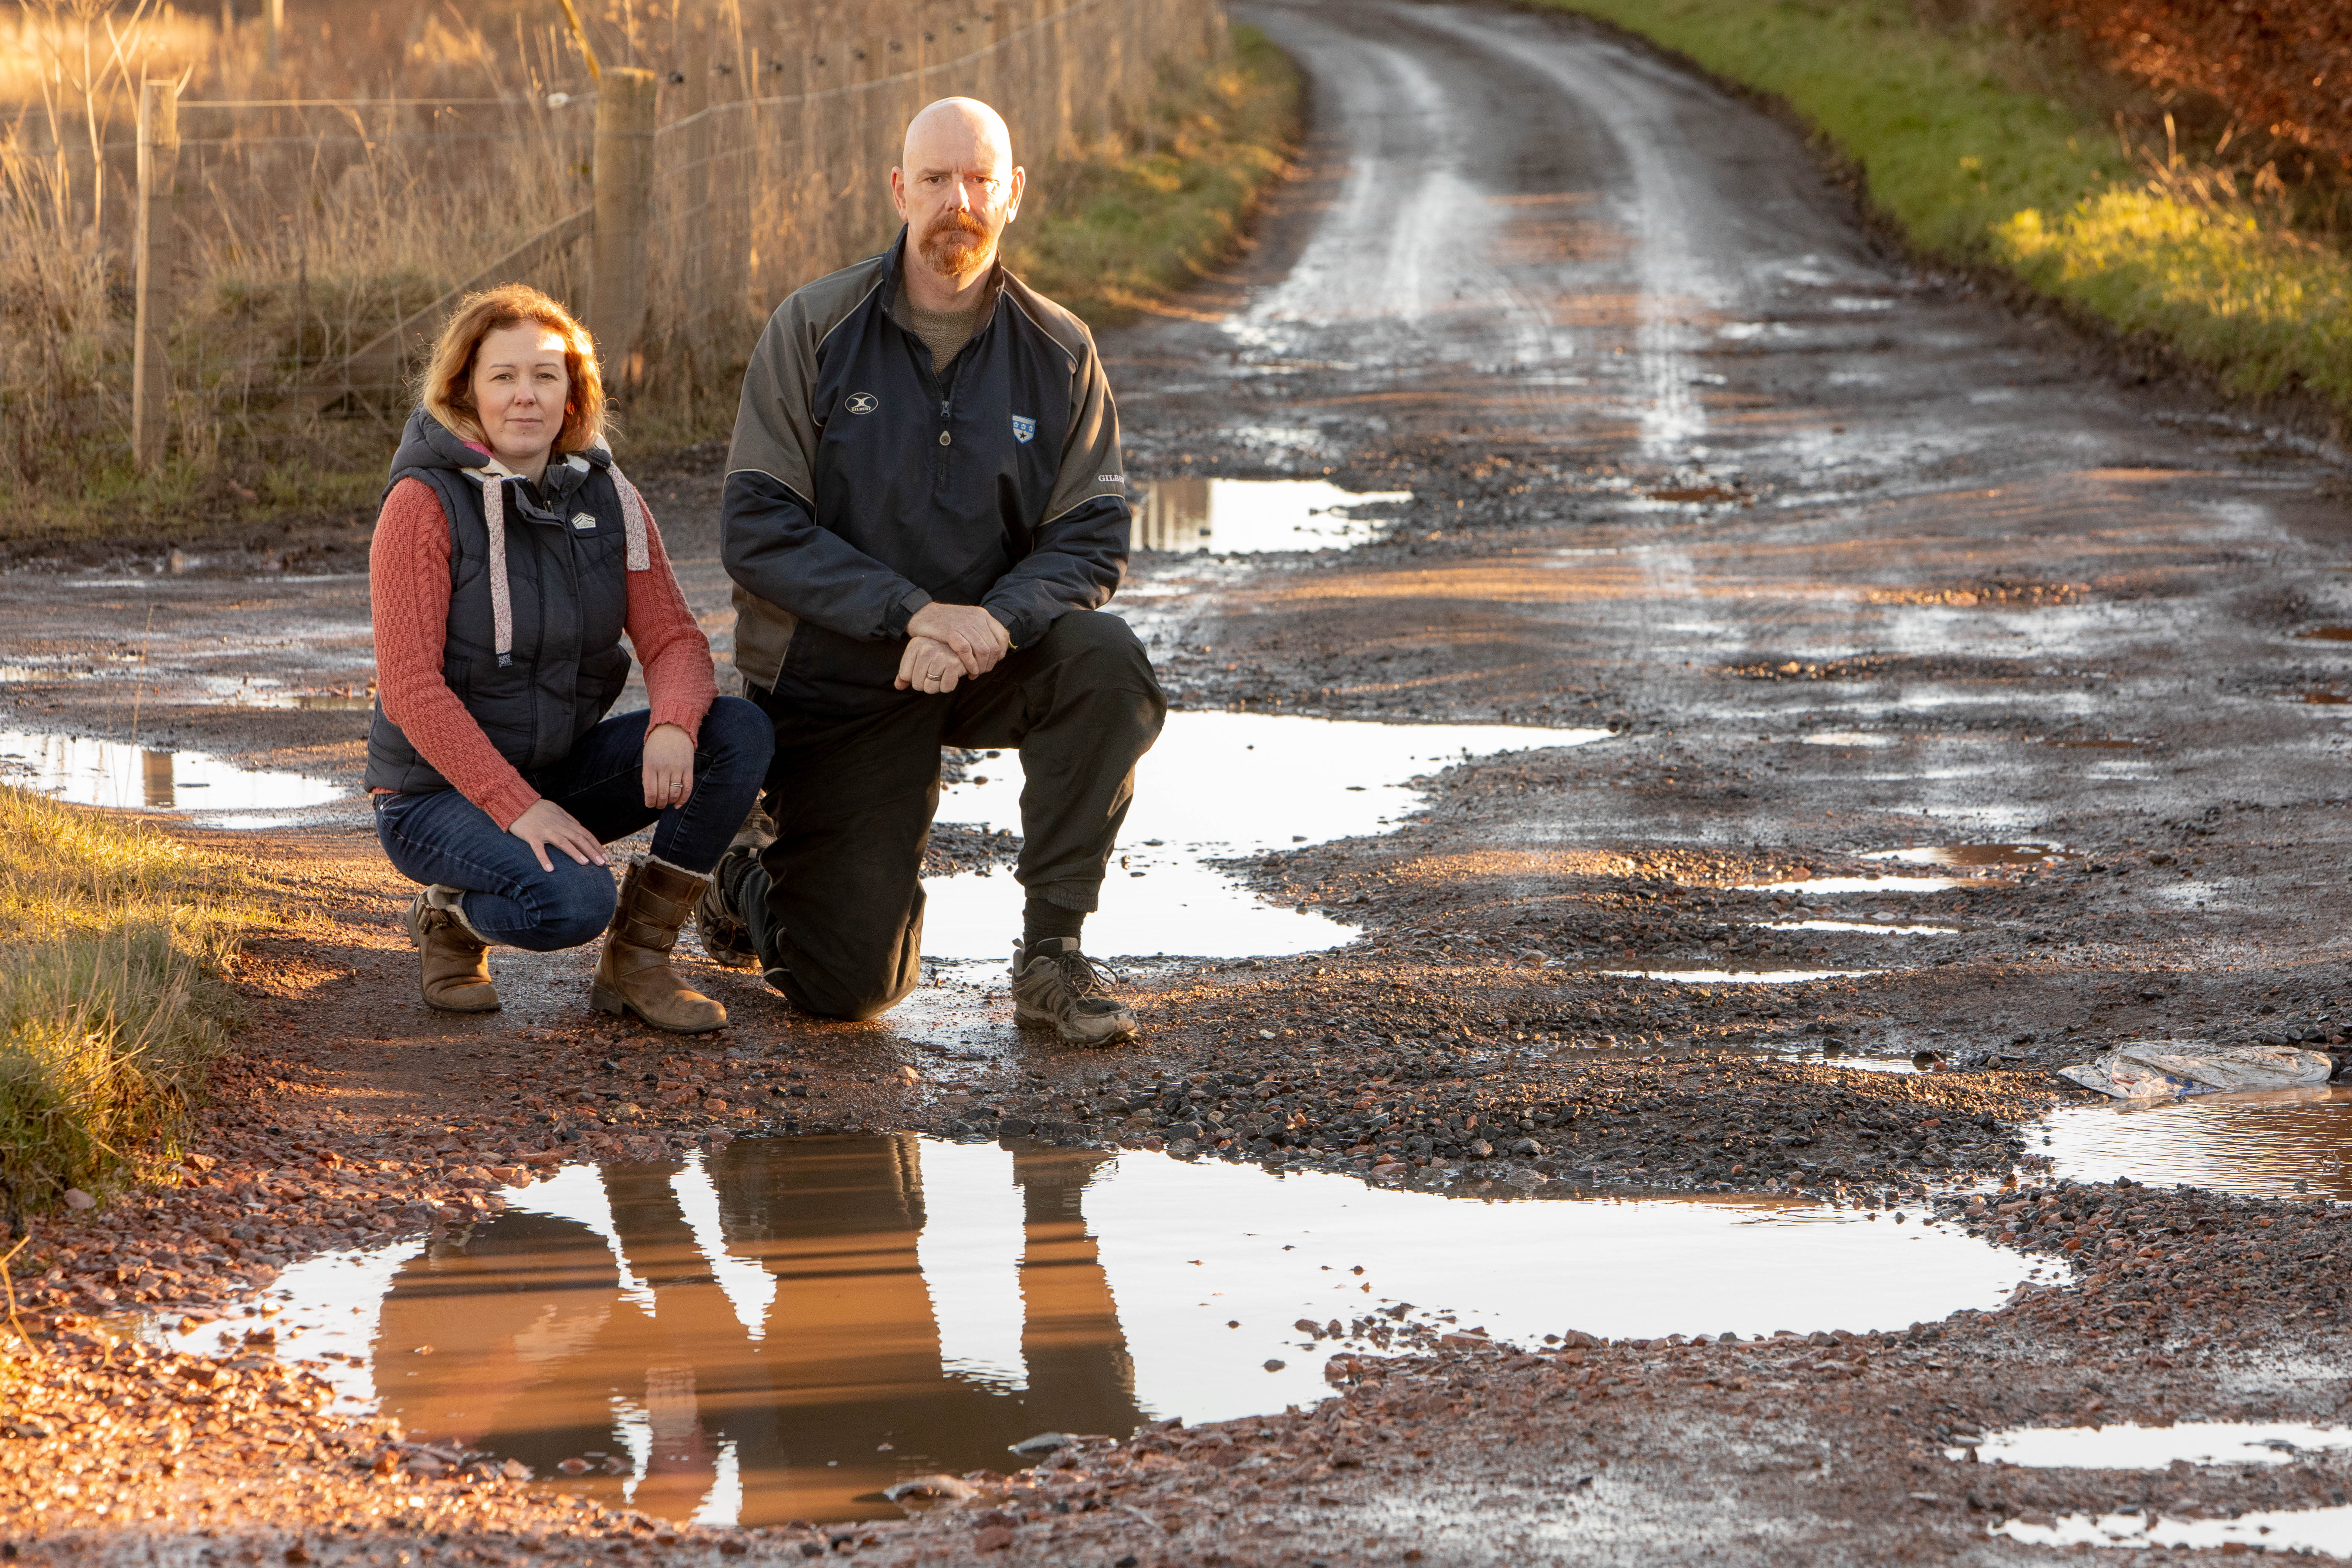 Laura Mysak and Alastair Stewart are looking for help from Fife Council to repair the potholed road they believe has been made worse by developments